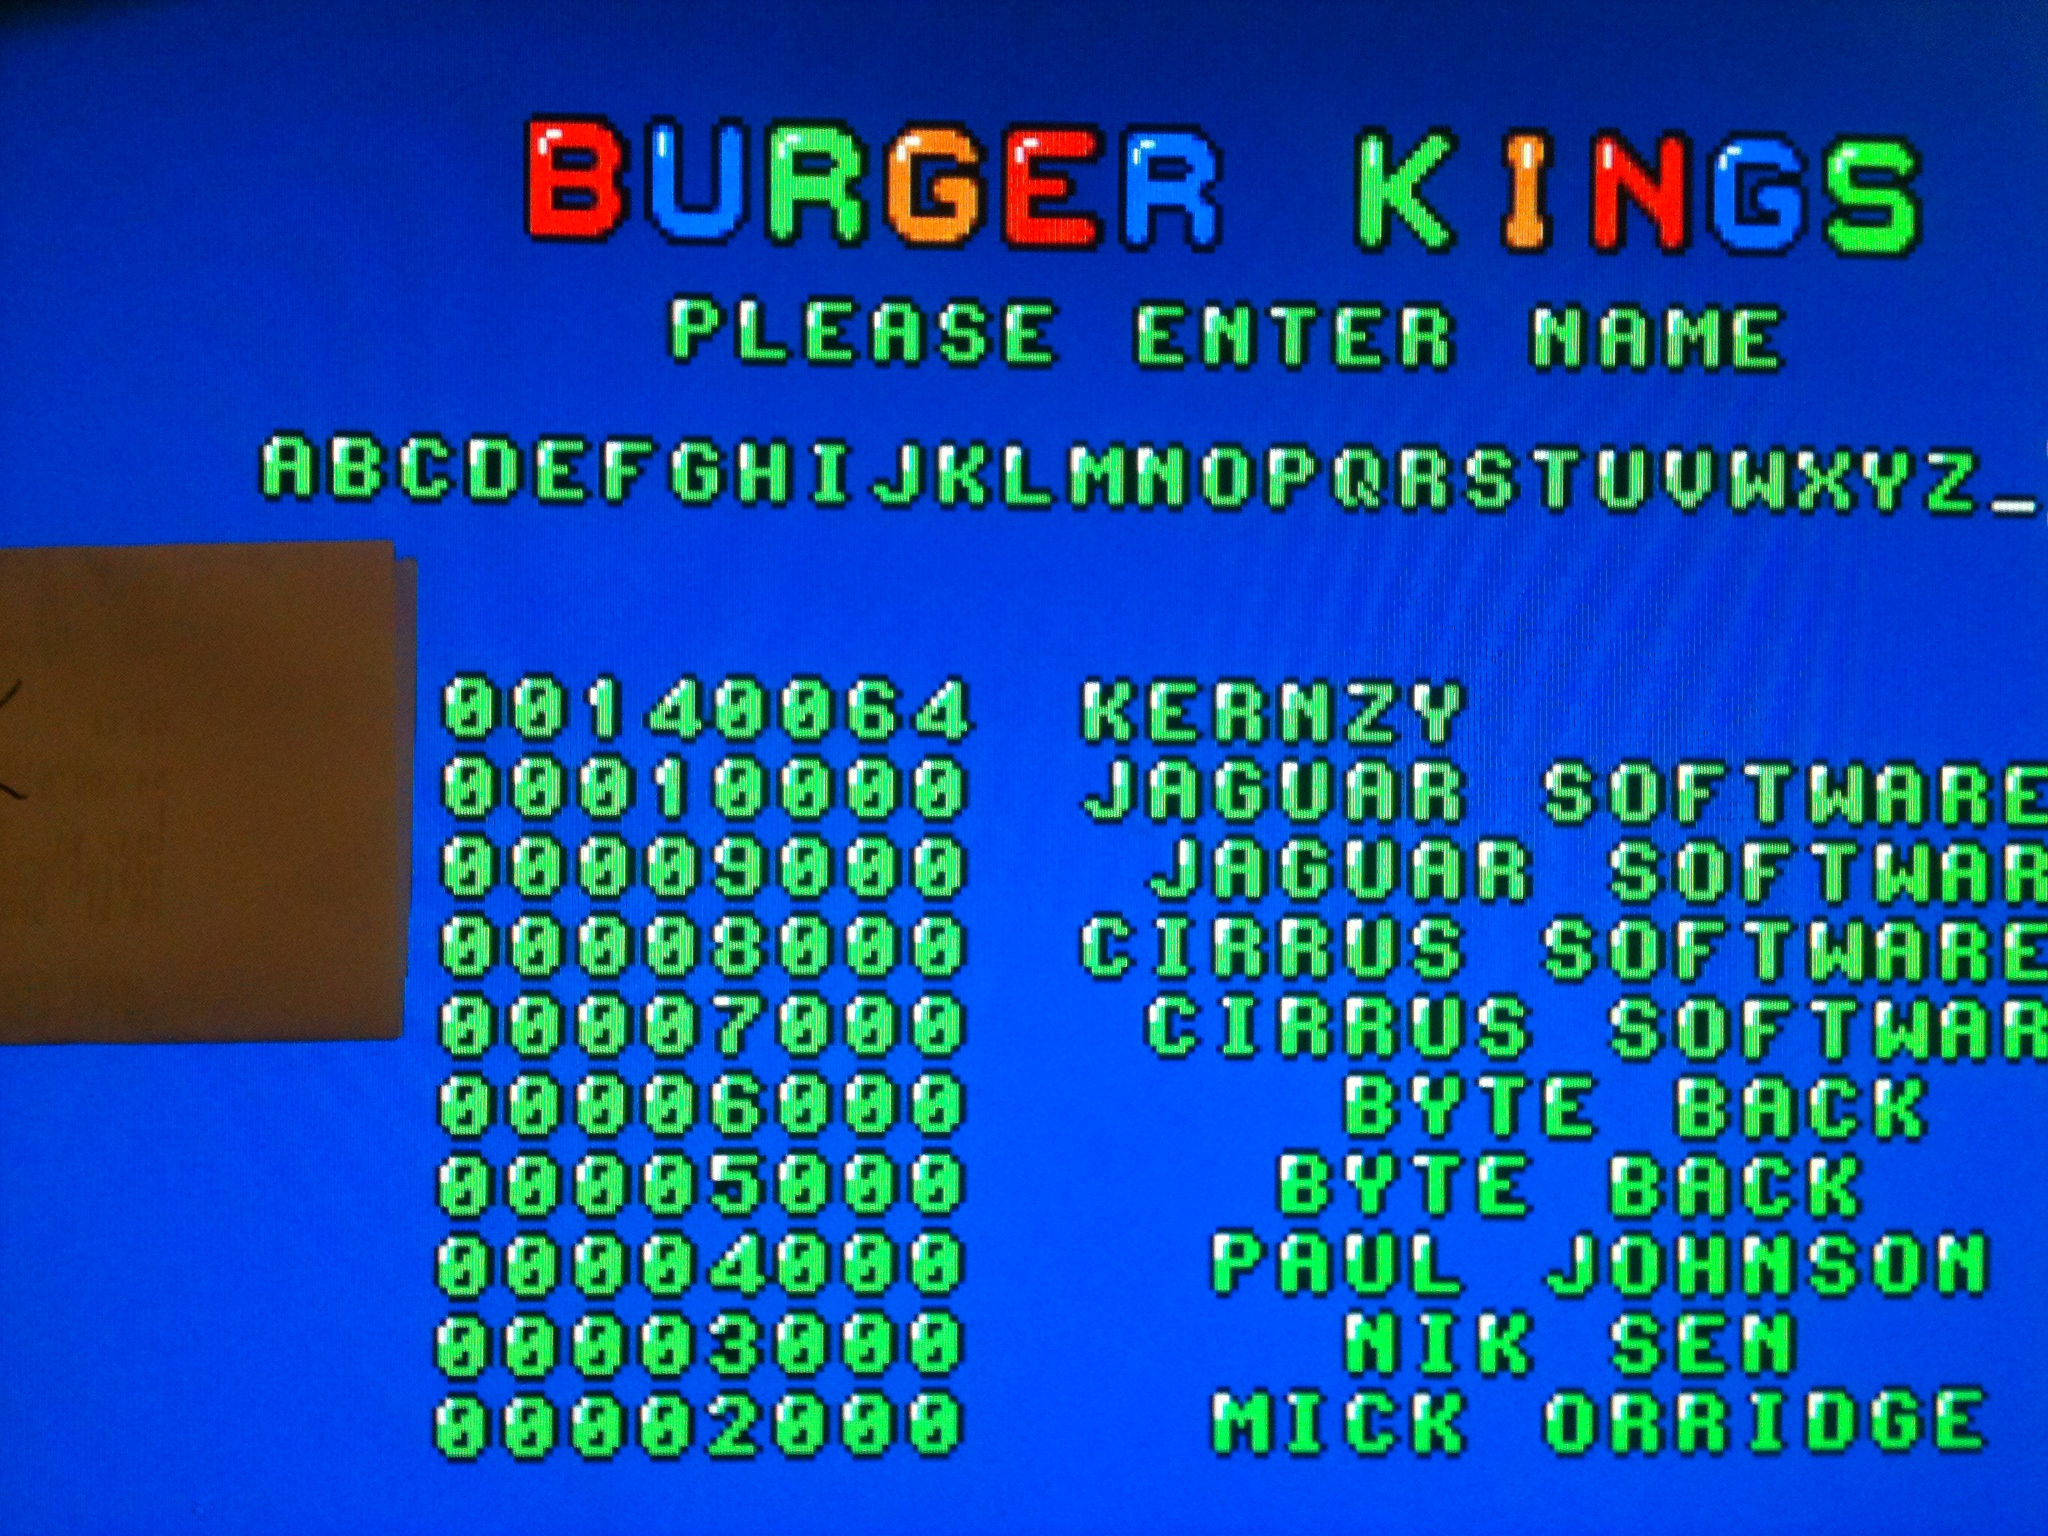 kernzy: BurgerTime (Atari ST Emulated) 140,064 points on 2015-02-02 08:50:49